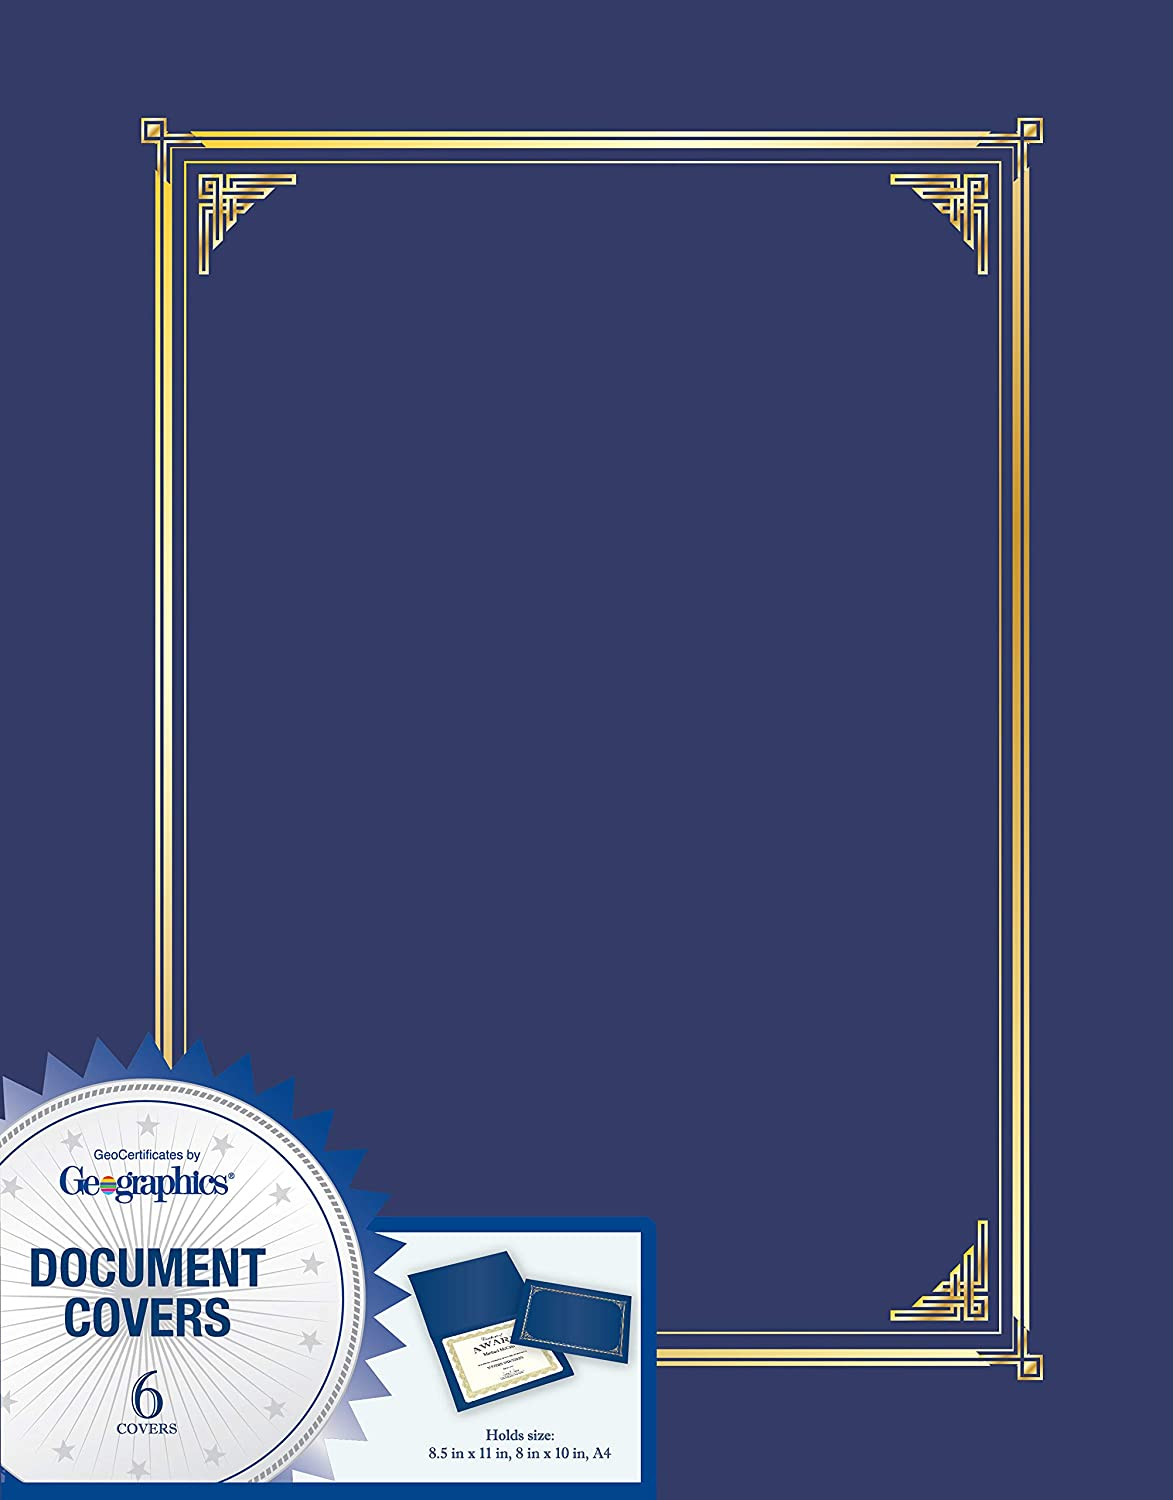 28ac250b5 Amazon.com: Geographics Navy Blue Document Covers, Foil, 6 Pack 8.5 in x 11  in , 8 in x 10 in: Office Products